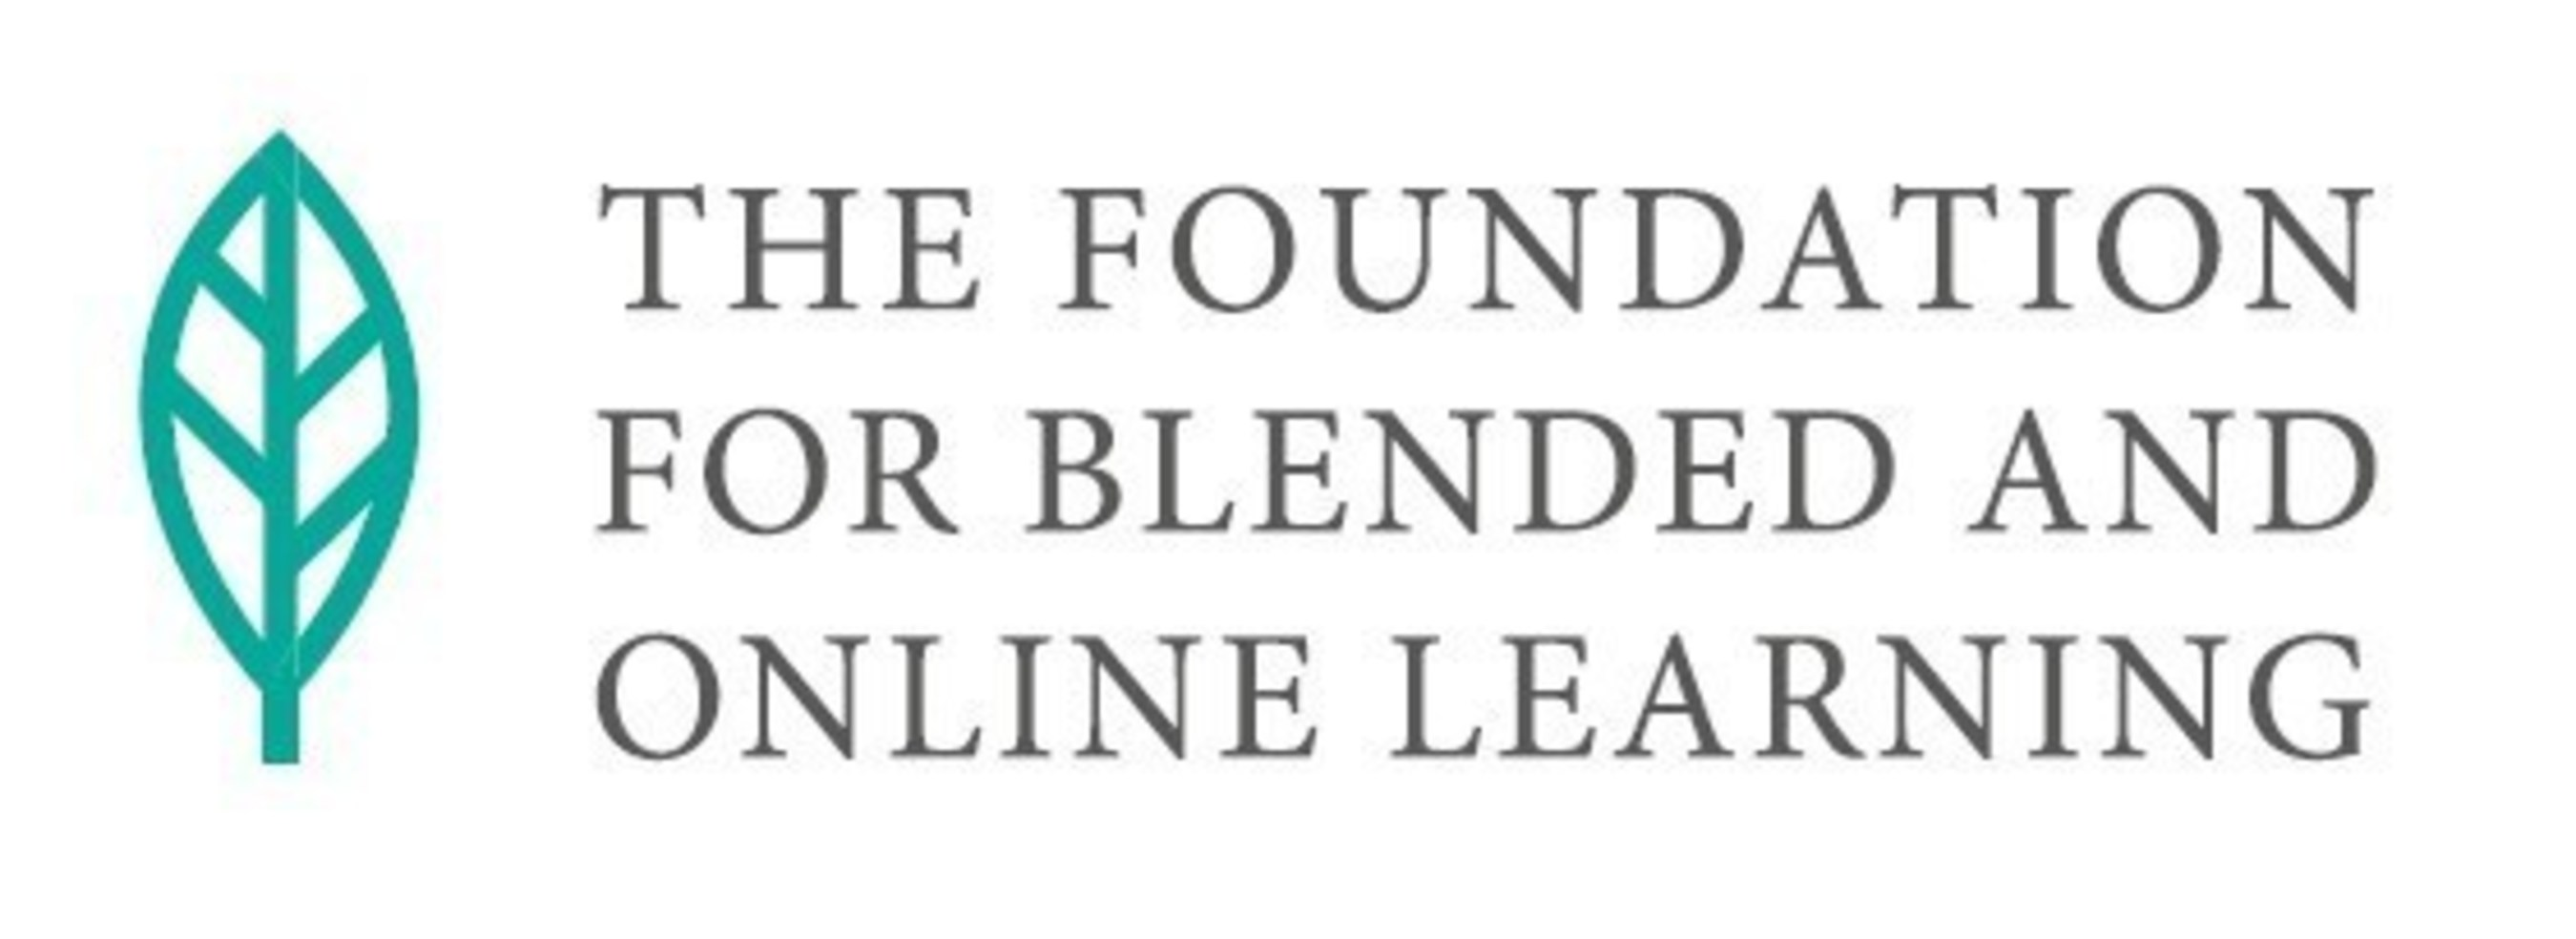 The Foundation for Blended and Online Learning is an independent charitable education organization. The mission of the foundation is to empower students through personalized learning by advancing the availability and quality of blended and online learning opportunities and outcomes. (PRNewsFoto/The Foundation for Blended and)